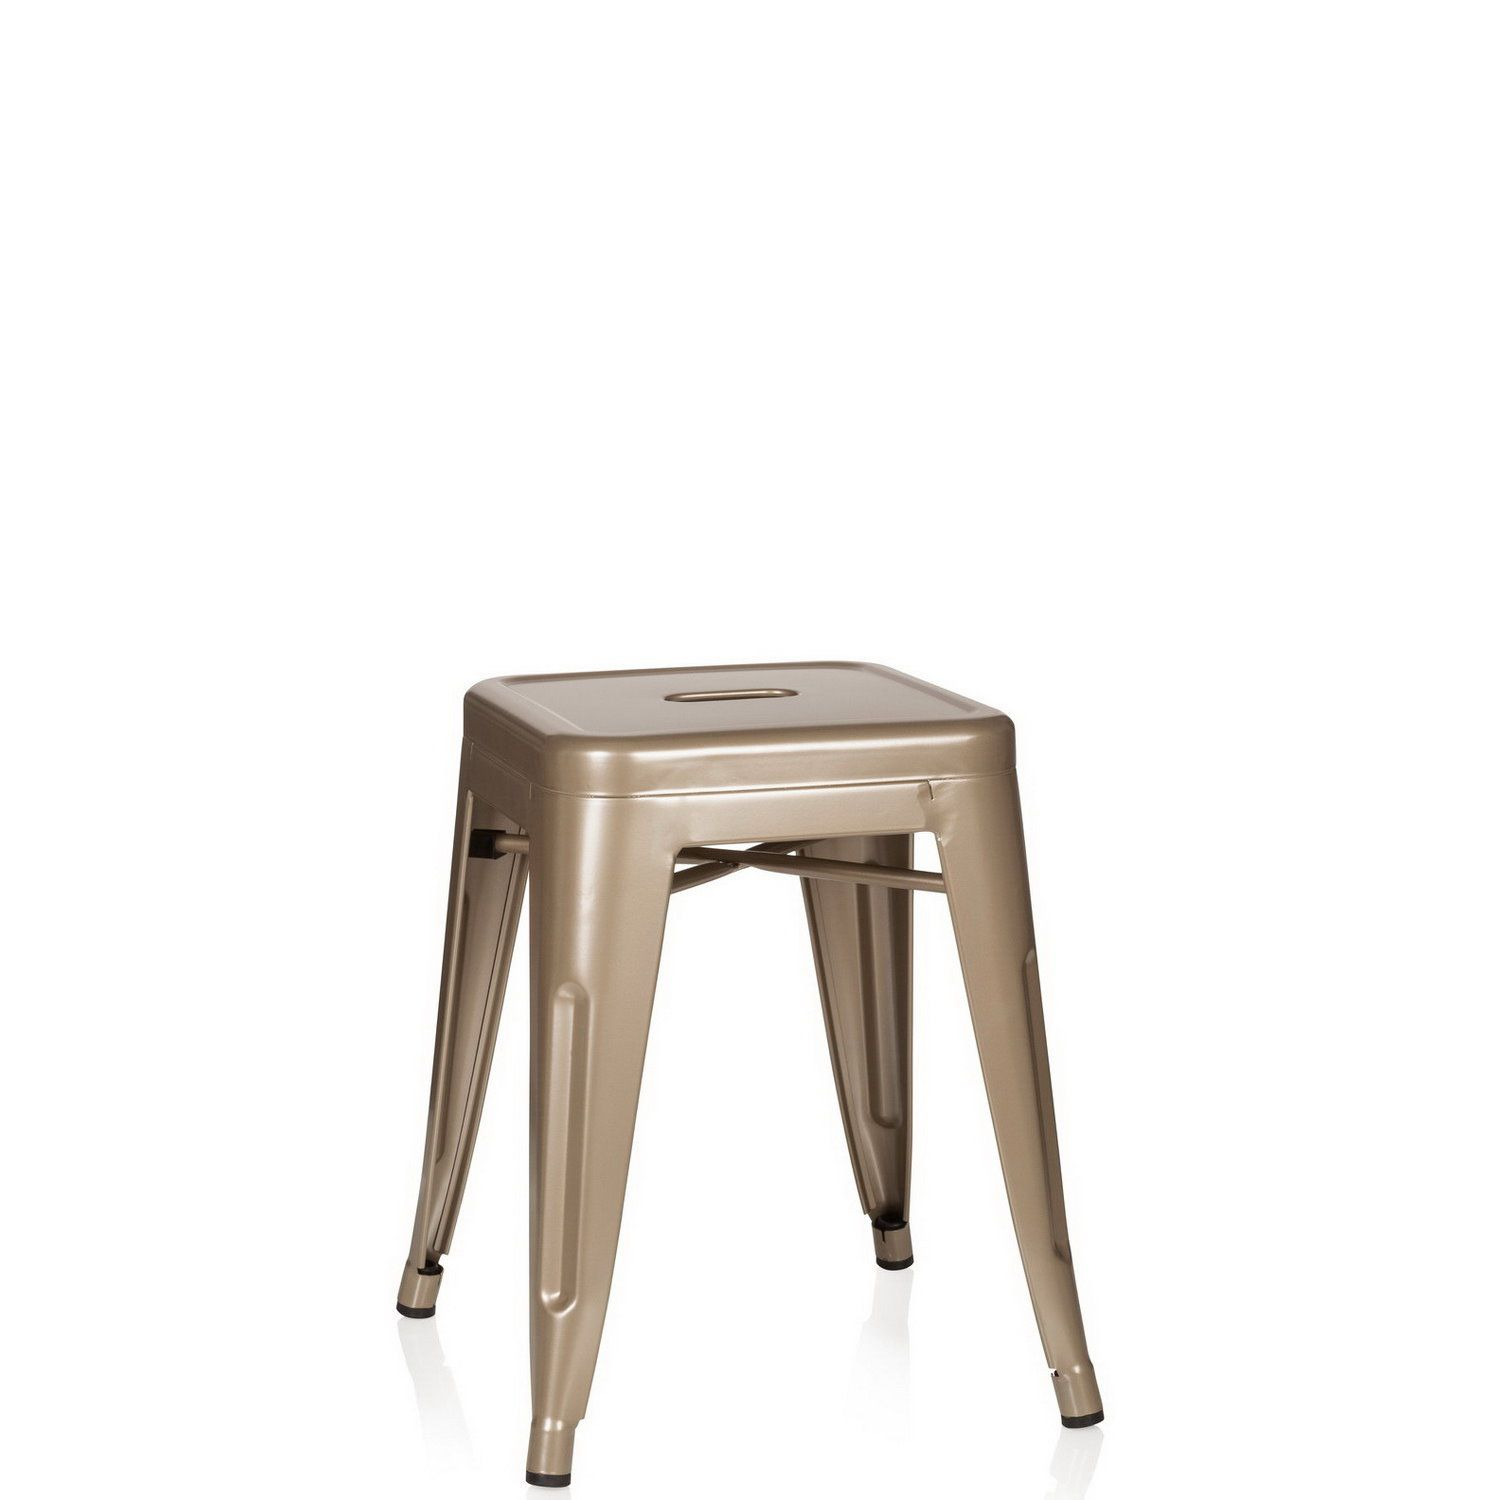 Hocker VANTAGGIO metallic champagner hjh OFFICE